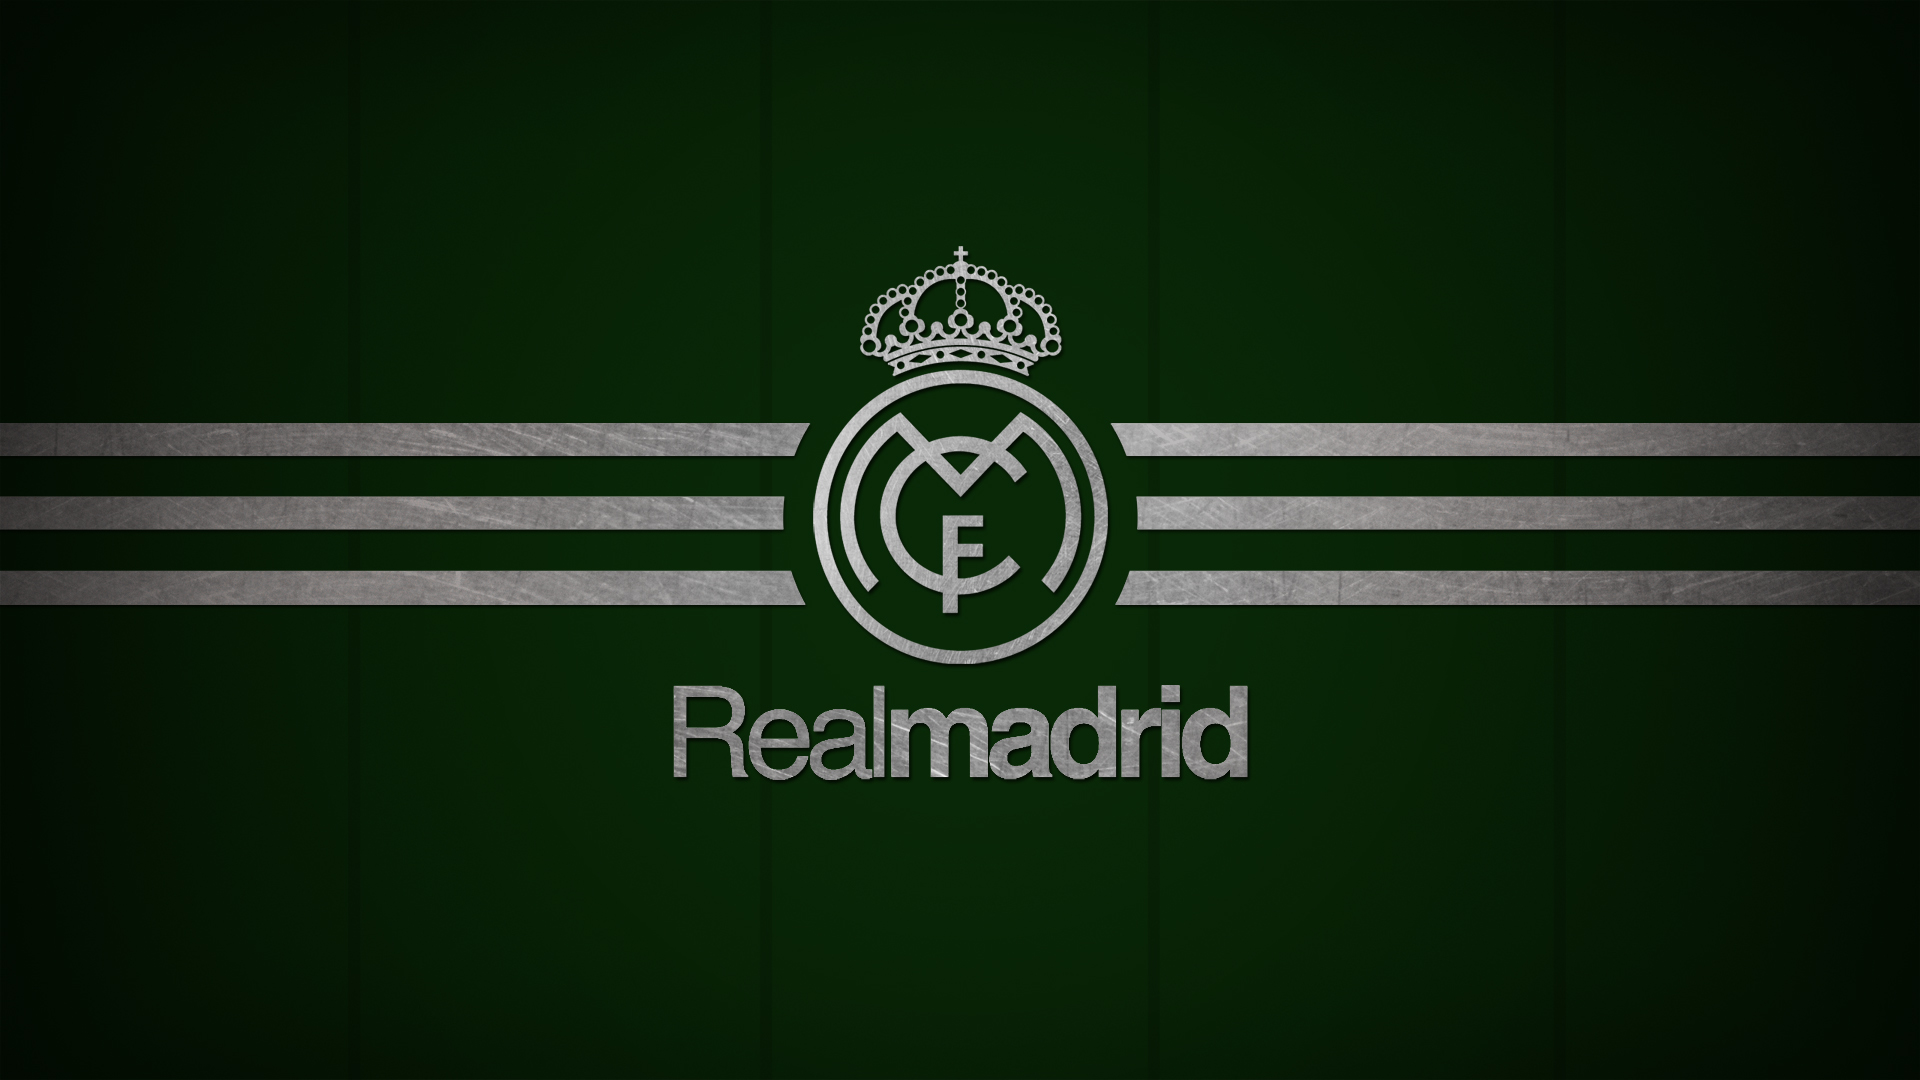 Real madrid logo blue background wallpaper wallpapersbyte 1920x1080 voltagebd Images